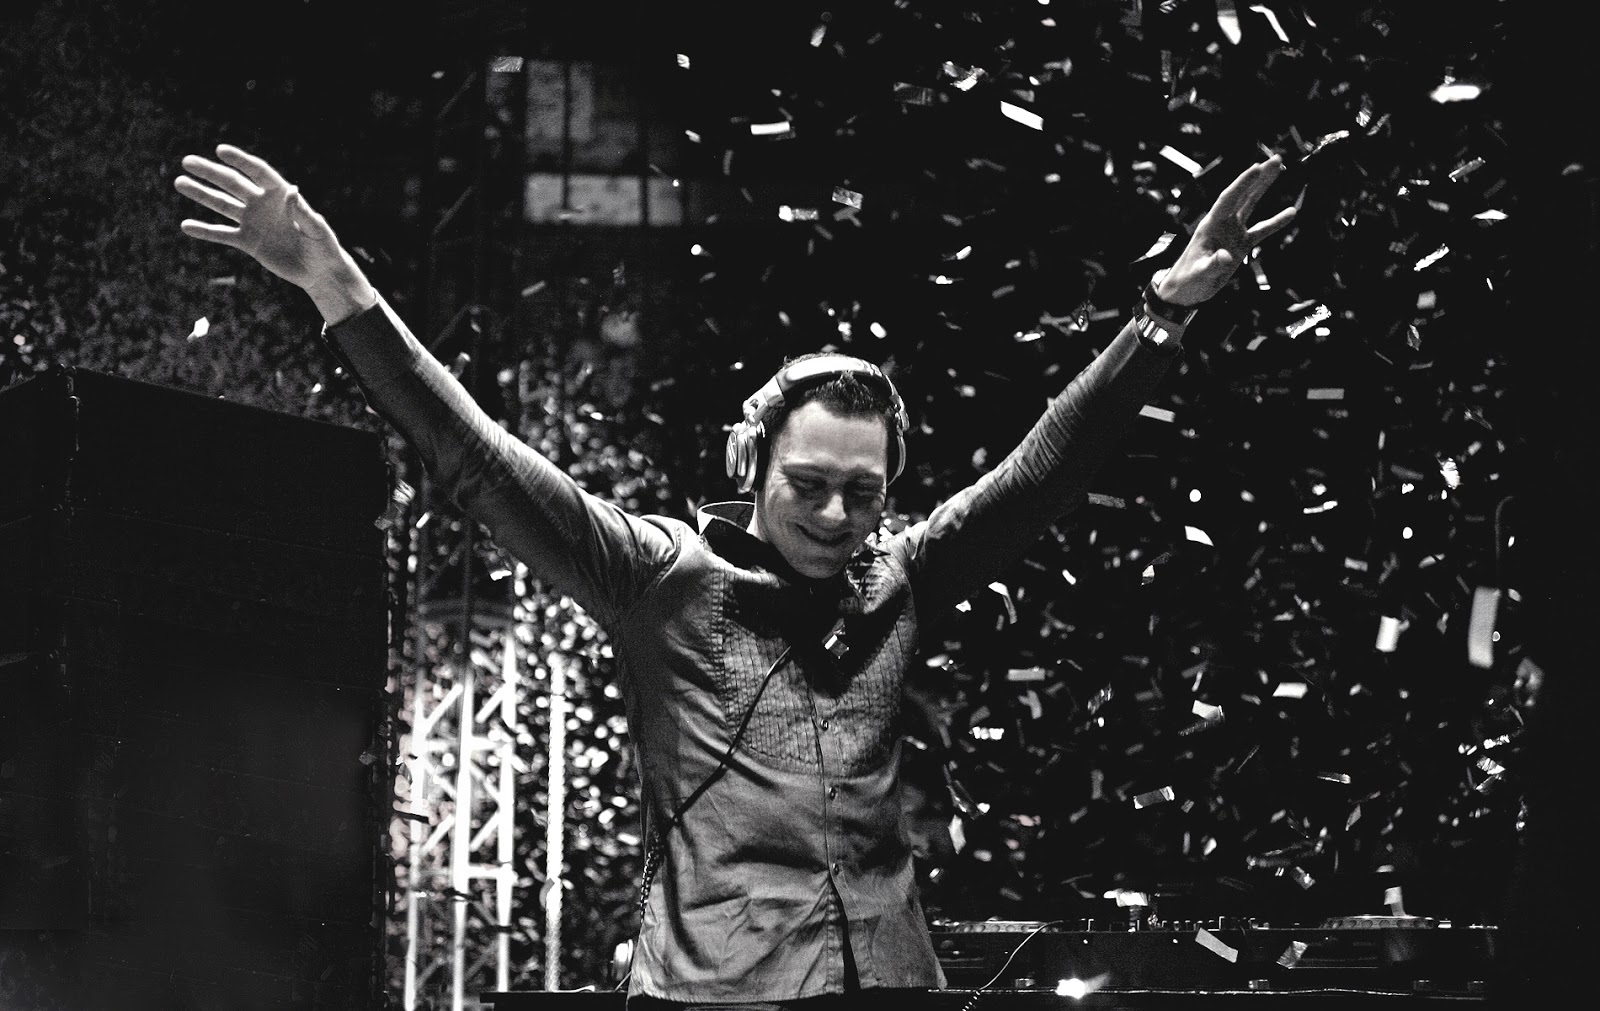 http://2.bp.blogspot.com/-mLhmCIRvzE0/UTvYRg5yXiI/AAAAAAAAPWw/g4vfXD-y-BQ/s1600/Tiesto-HD-Tiesto-Wallpaper-Black-and-White-Arms-Raised-Live.jpg